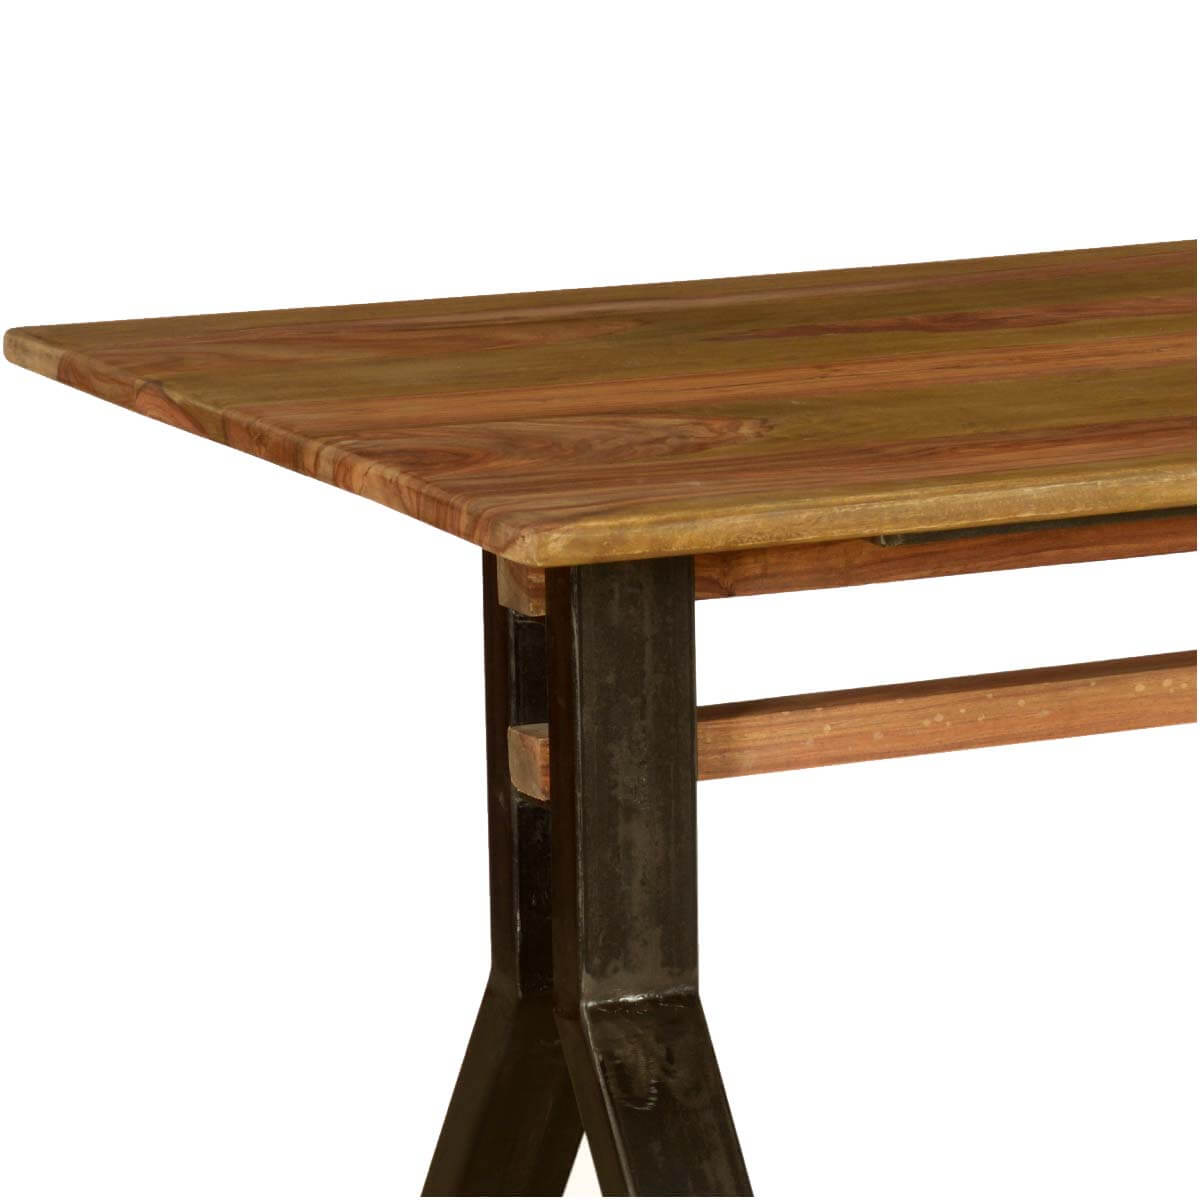 Rustic Wooden Dining Tables ~ Pioneer rustic solid wood iron industrial trestle dining